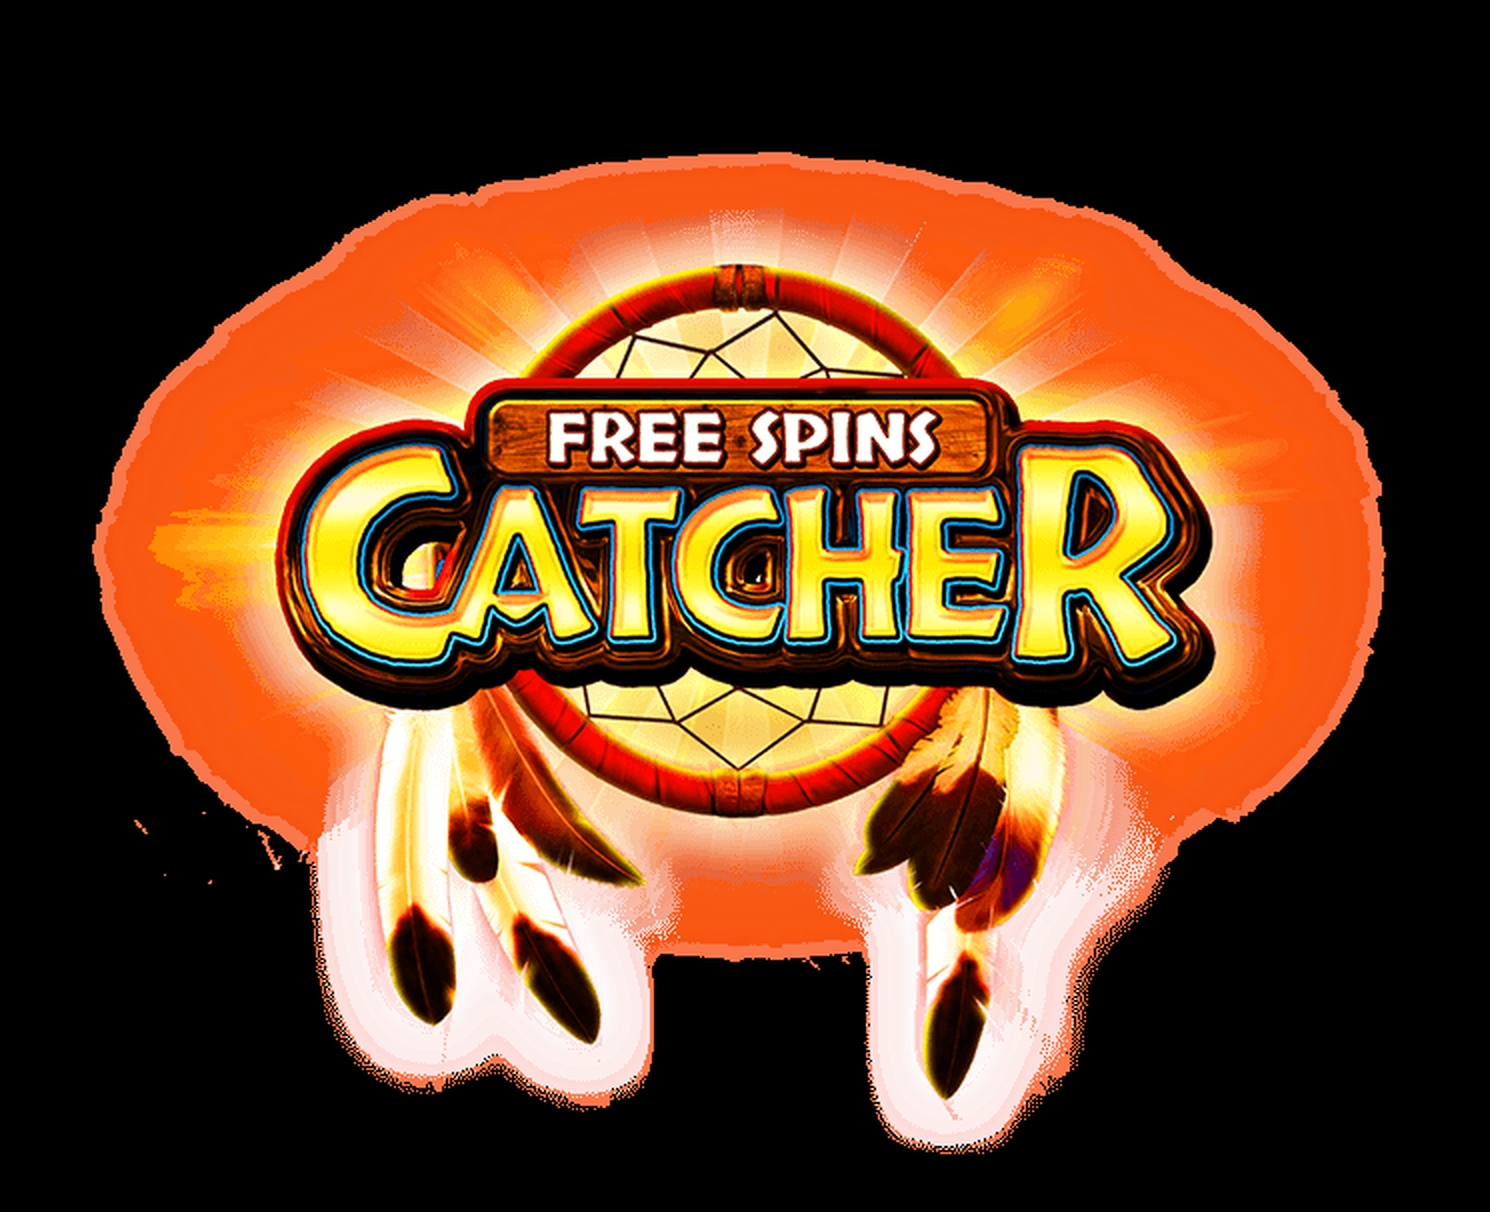 The Free Spins Catcher Online Slot Demo Game by bluberi